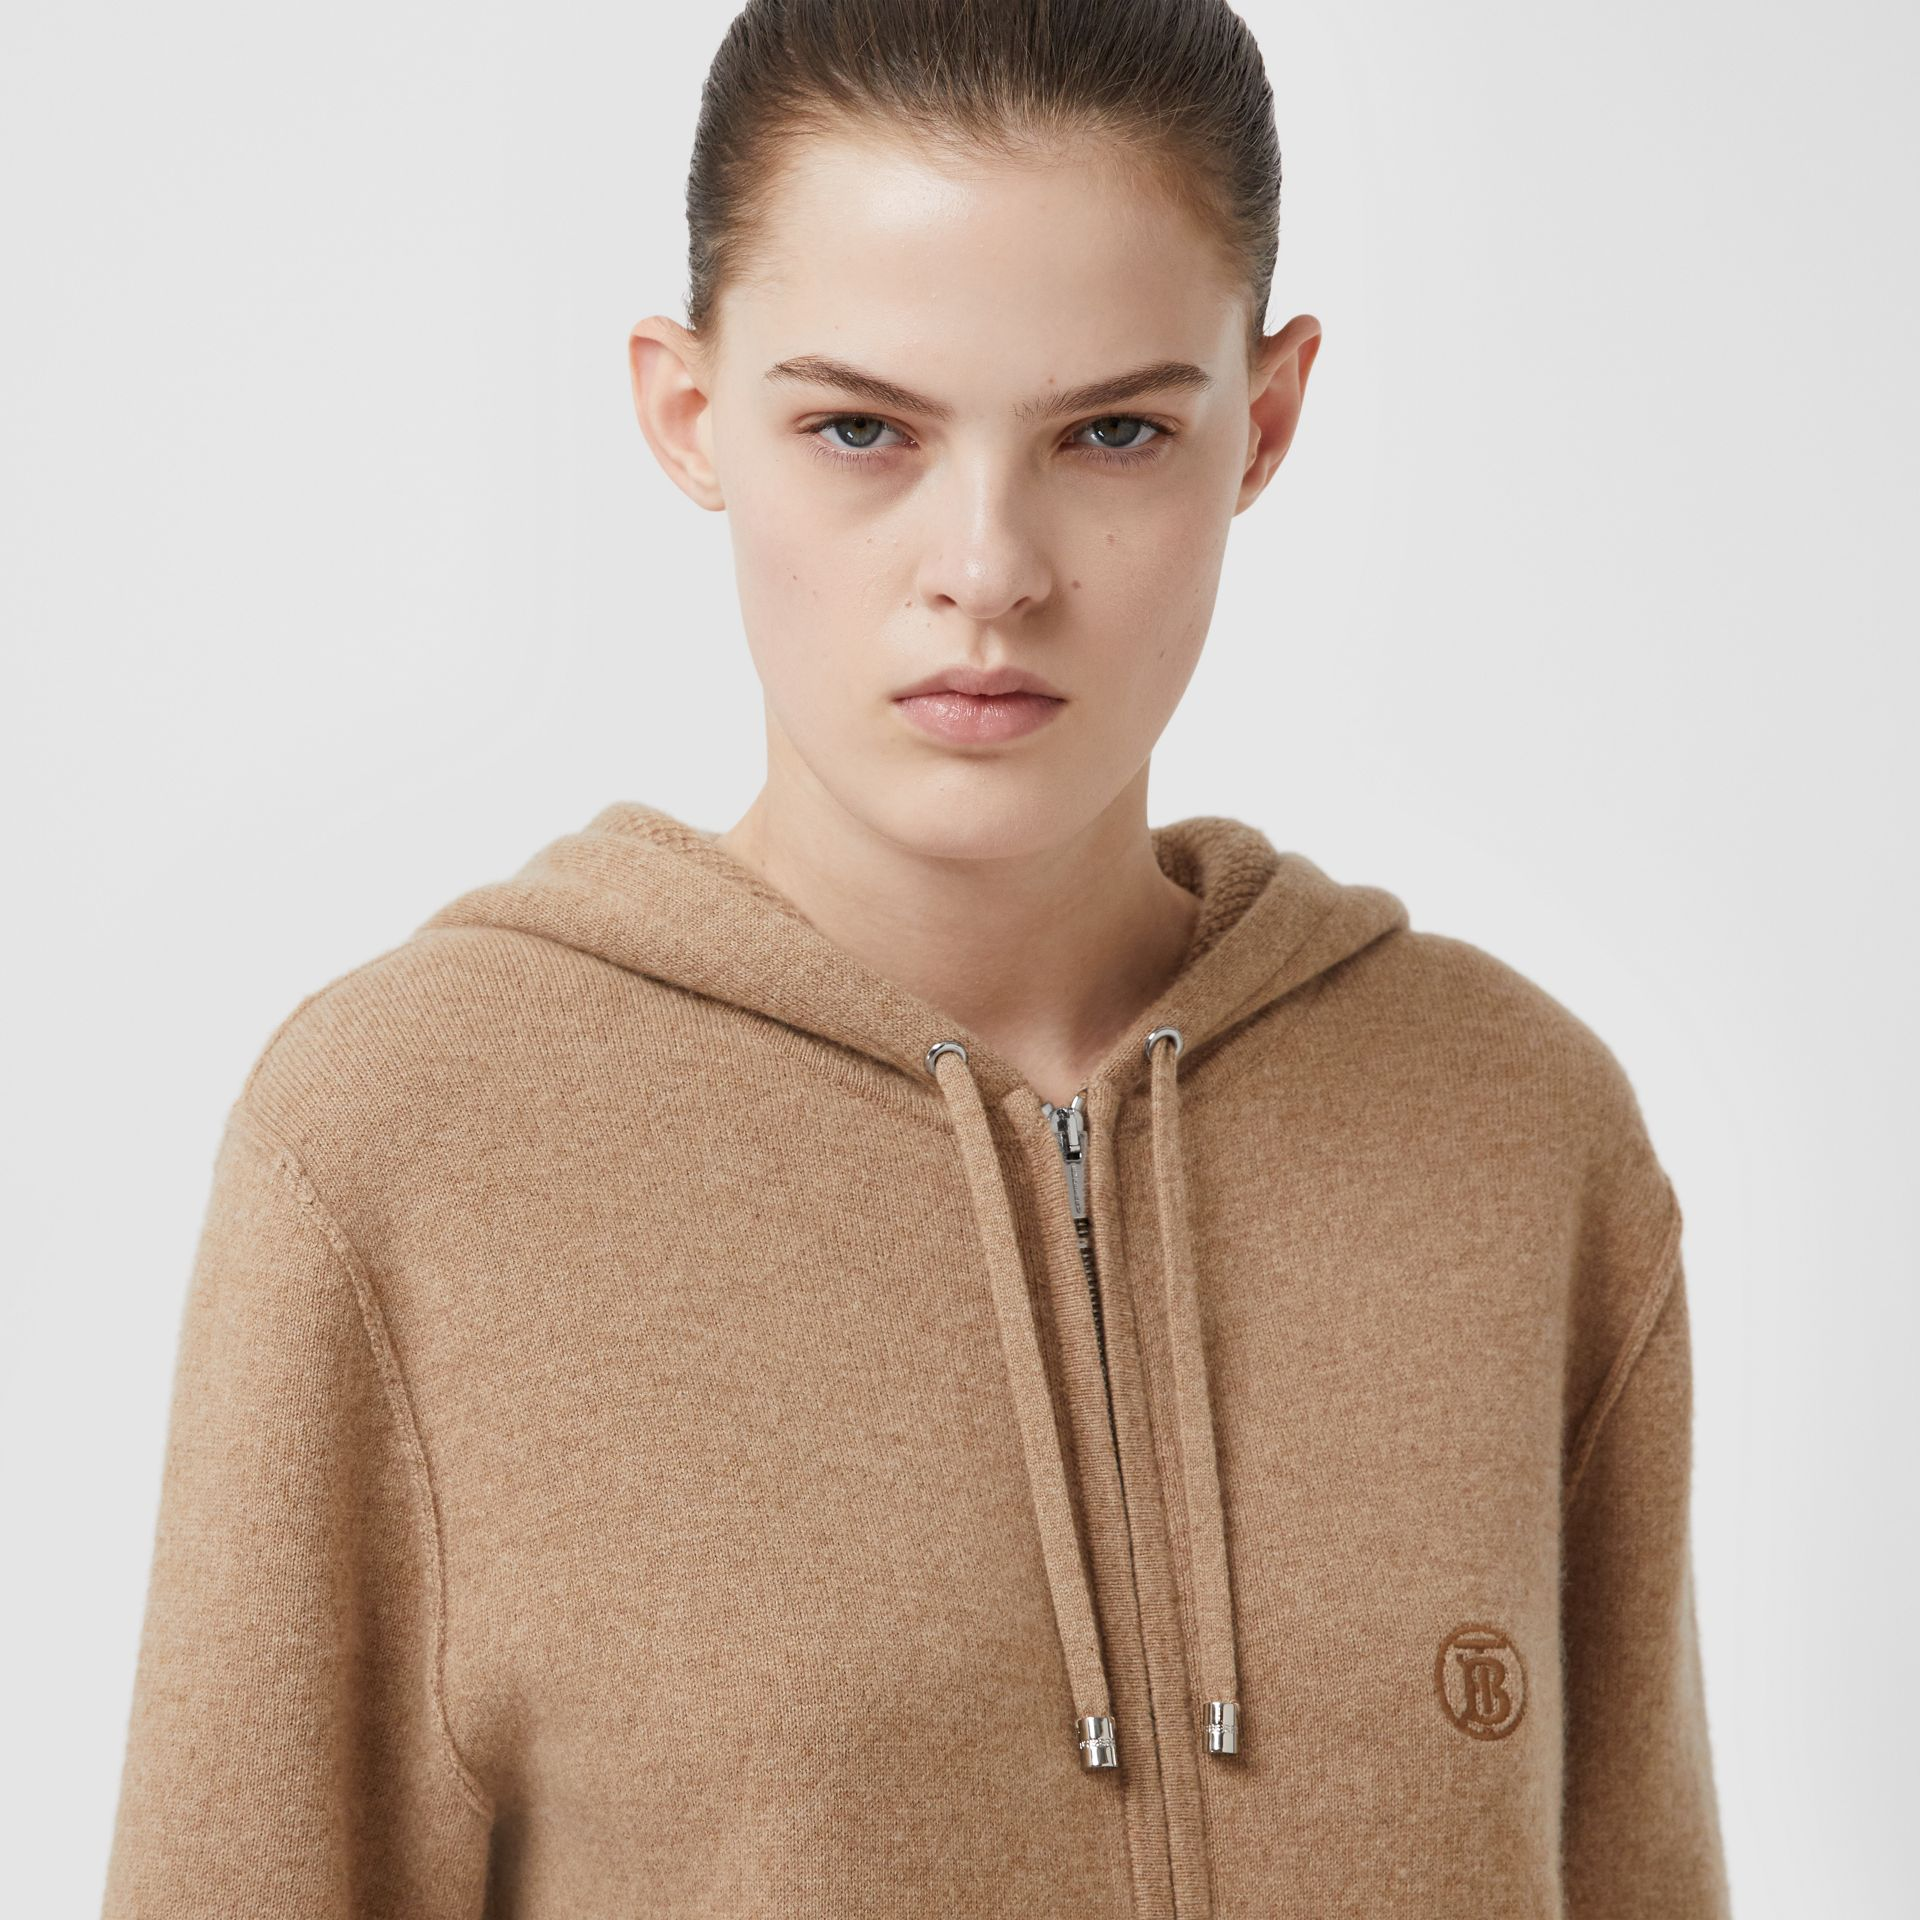 Monogram Motif Cashmere Blend Hooded Top in Pale Coffee - Women | Burberry United Kingdom - gallery image 0